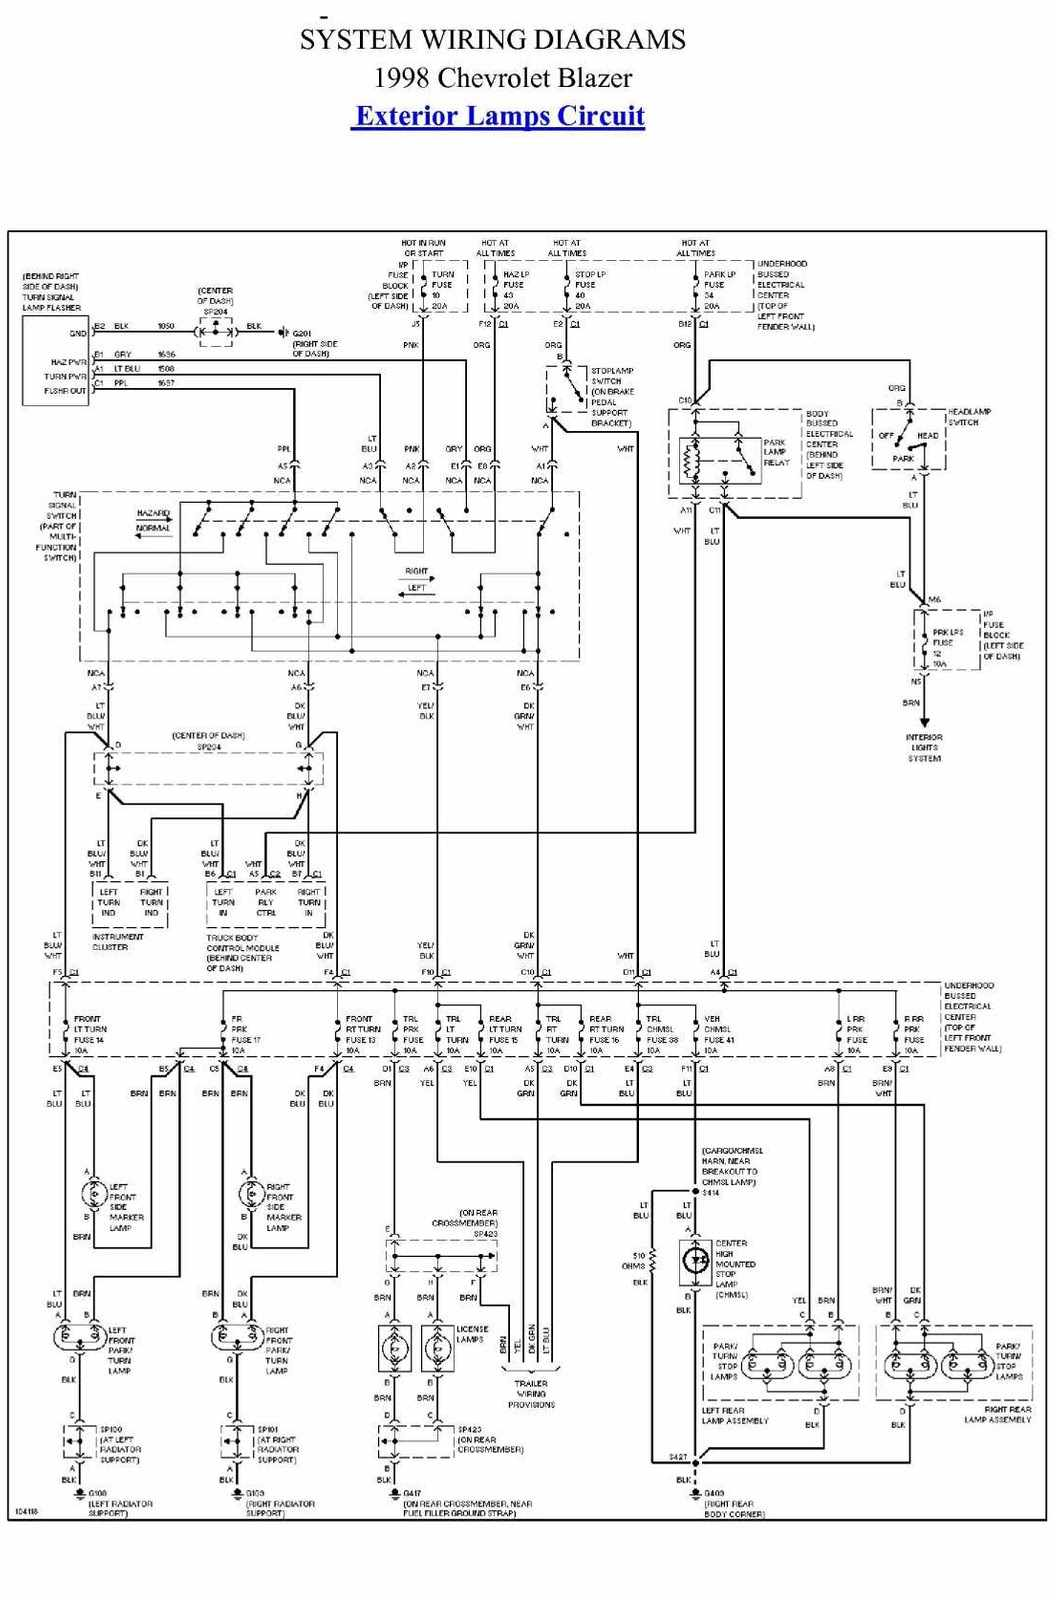 Exterior%2BLamp%2BCircuit%2BDiagram%2BOf%2B1998%2BChevrolet%2BBlazer wiring diagrams for 1998 chevy trucks readingrat net wiring diagram for 1998 chevy silverado at honlapkeszites.co